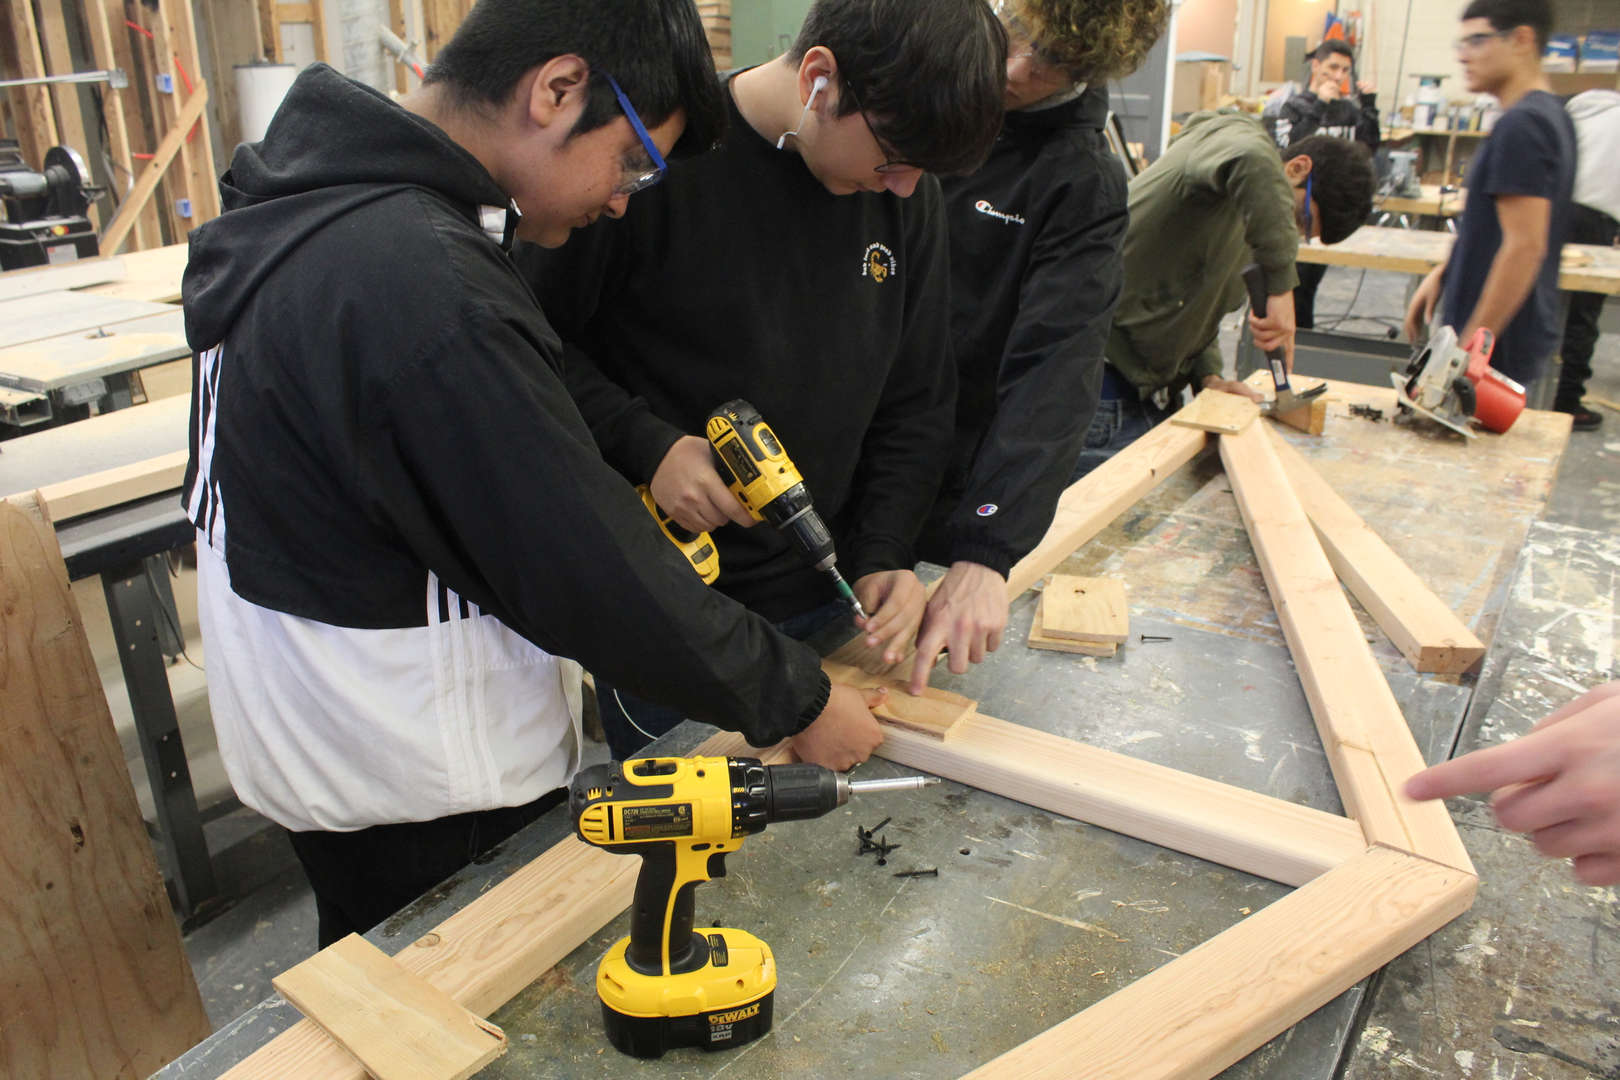 Two boys nail truss together